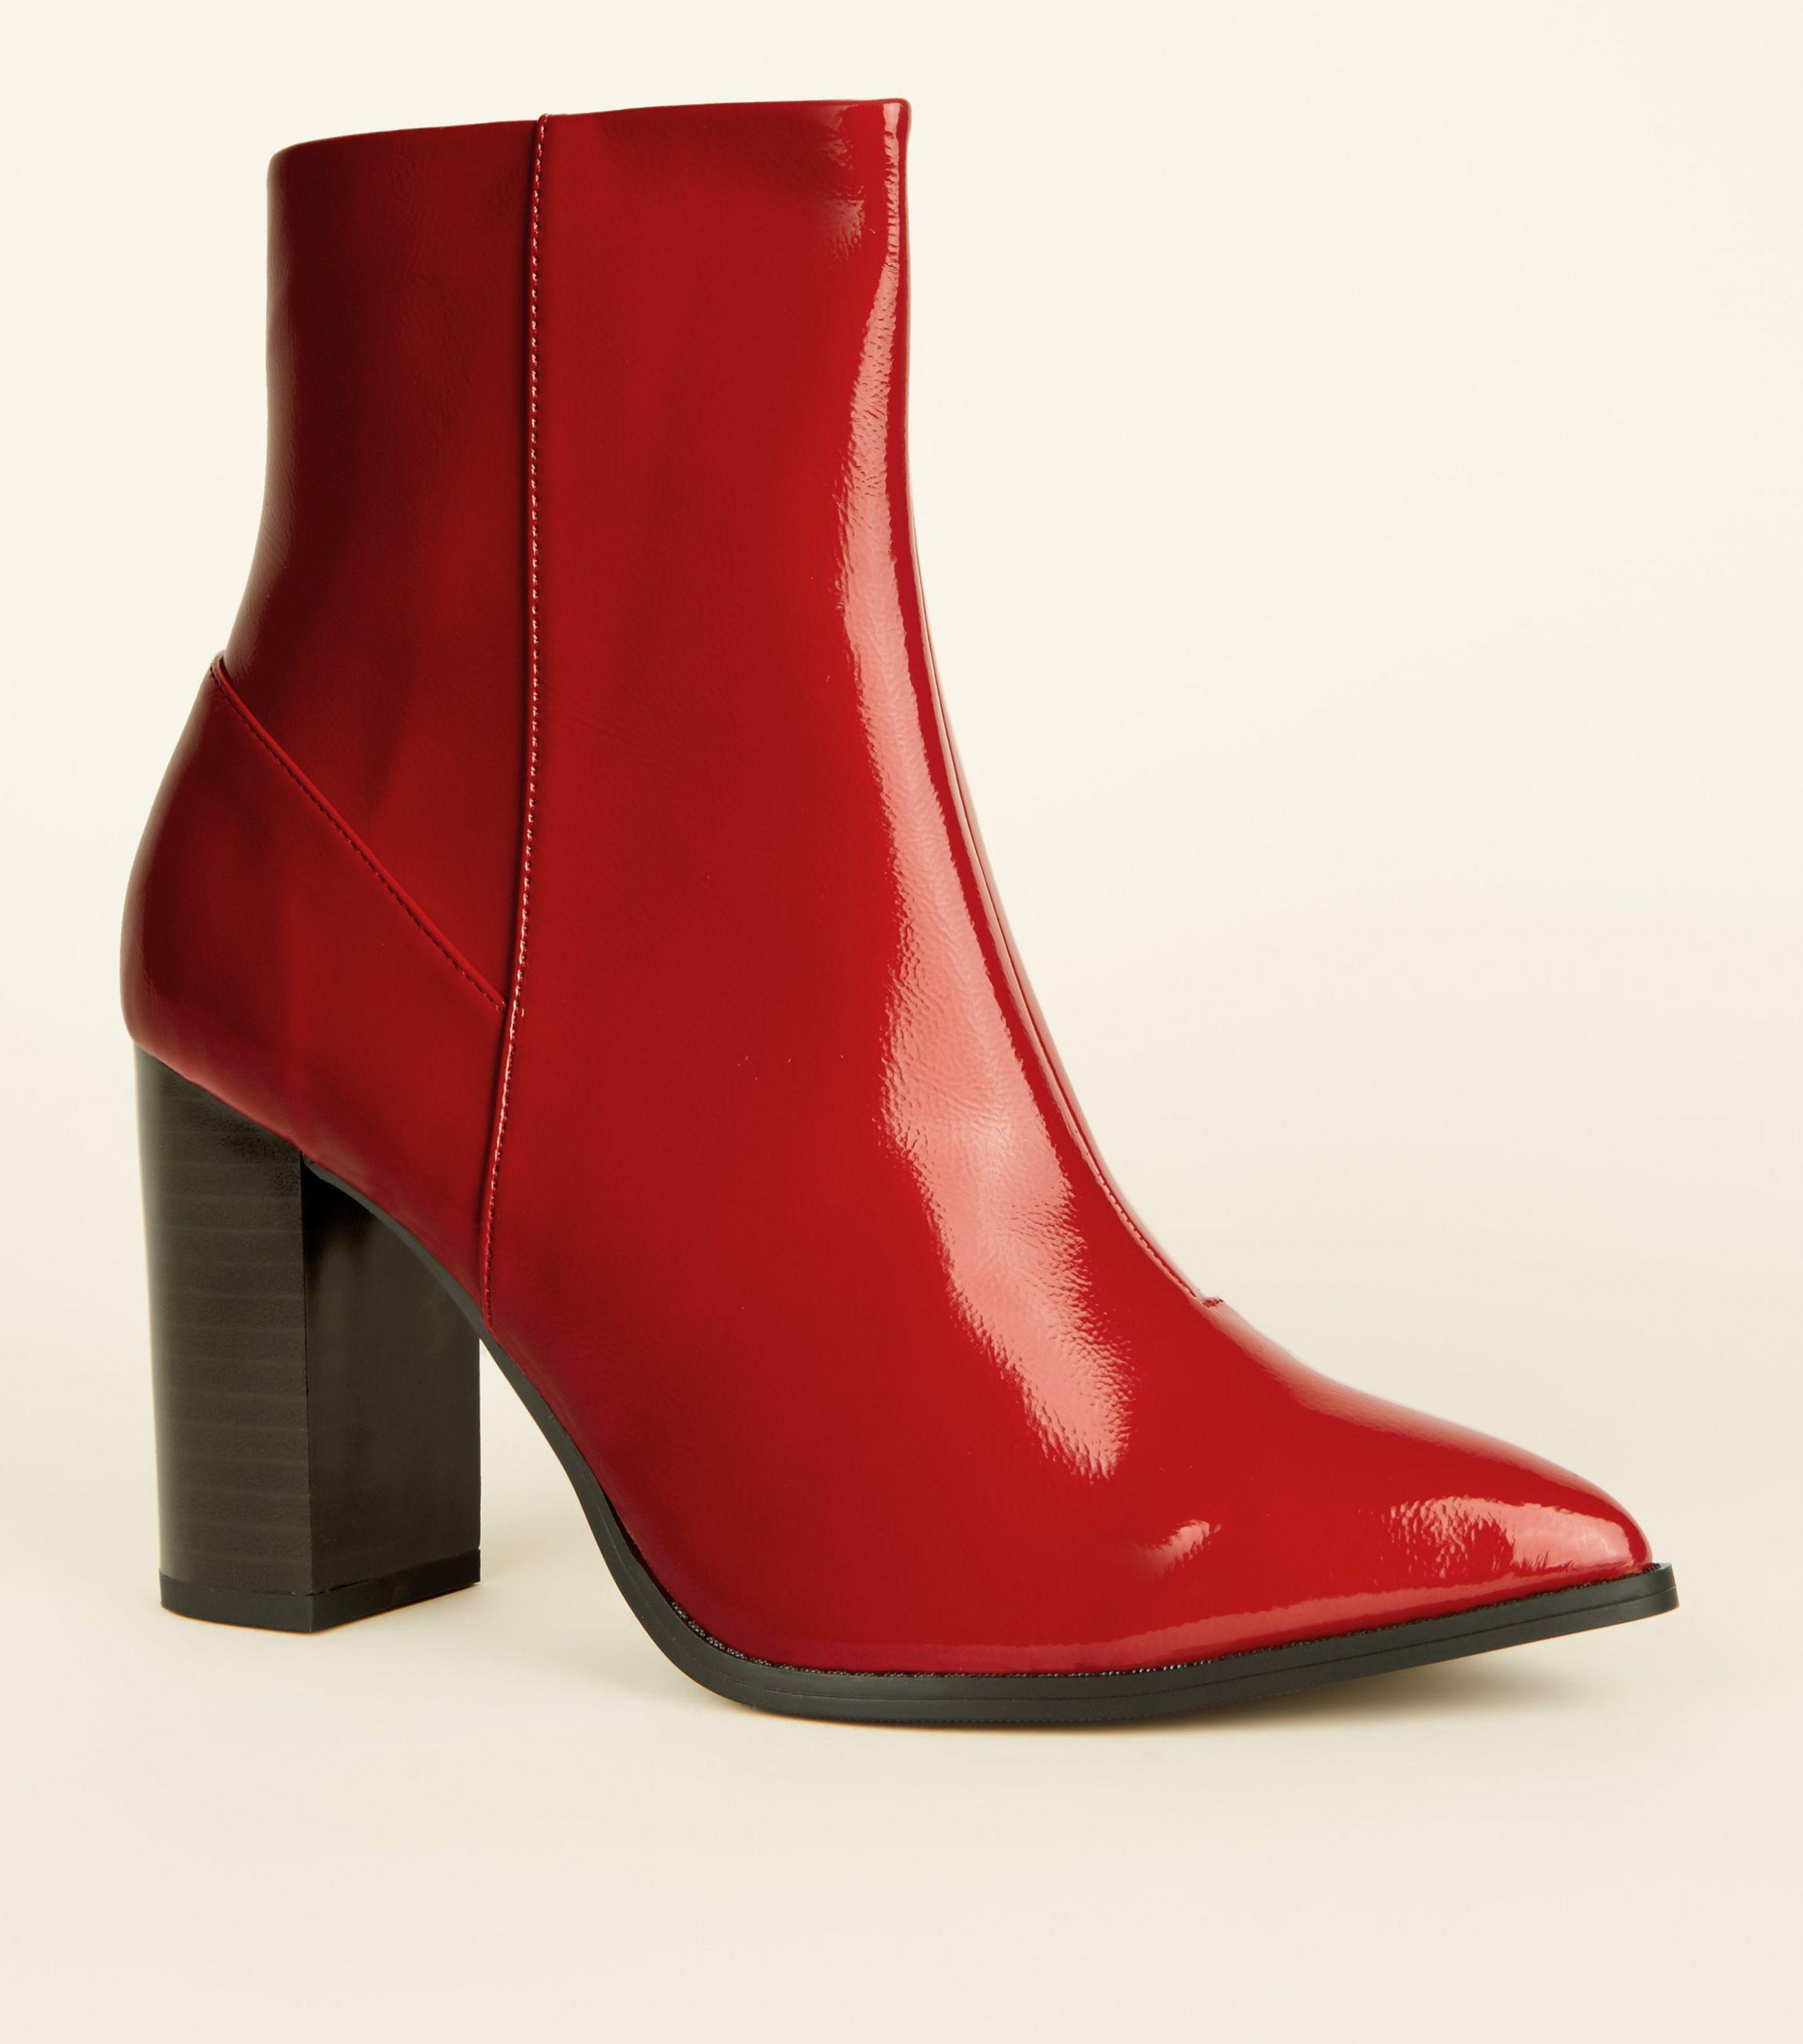 baf9669f092 New Look Wide Fit Red Patent Block Heel Boots in Red - Lyst